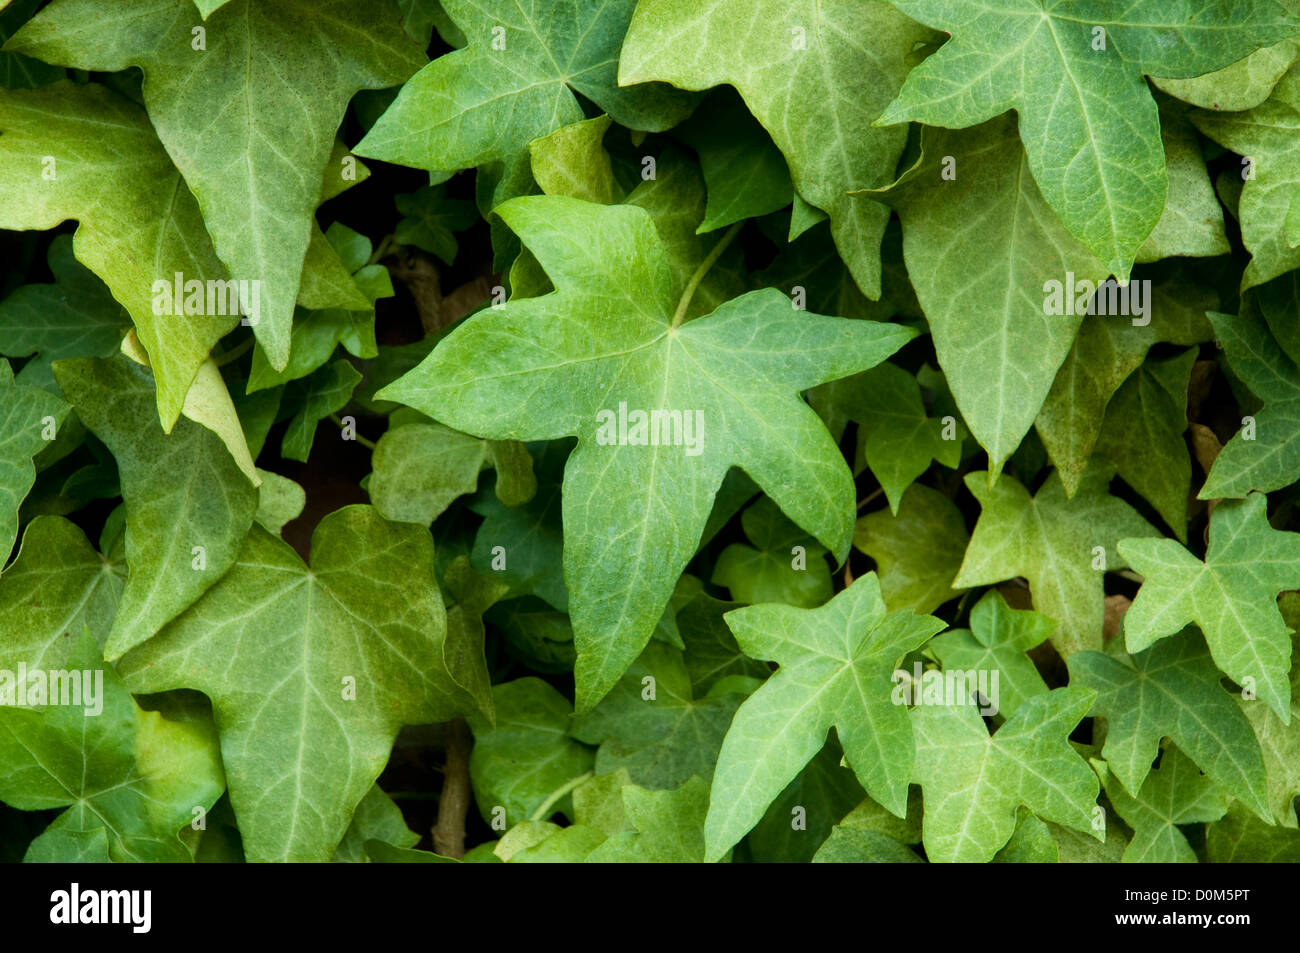 Ivy on a brick wall - Stock Image